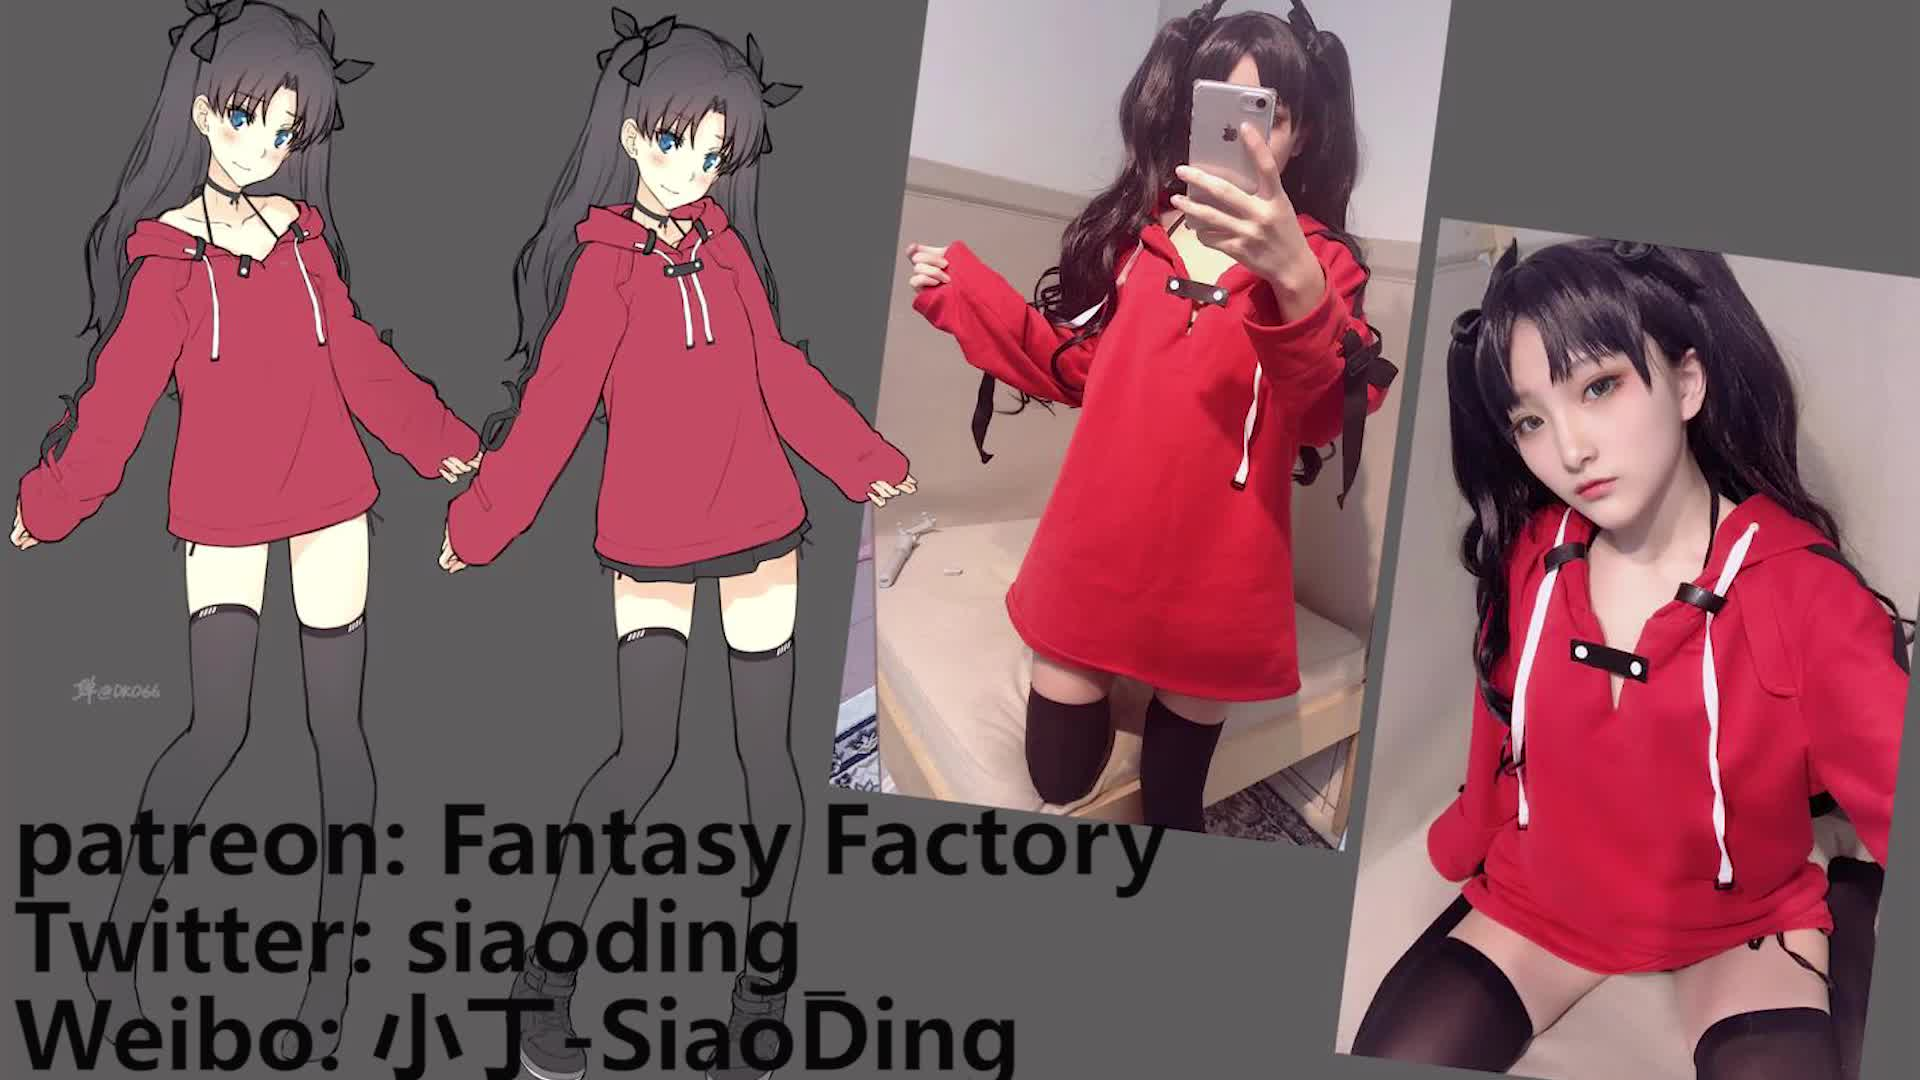 patreon fantasy factory 自慰自拍gachinco.com